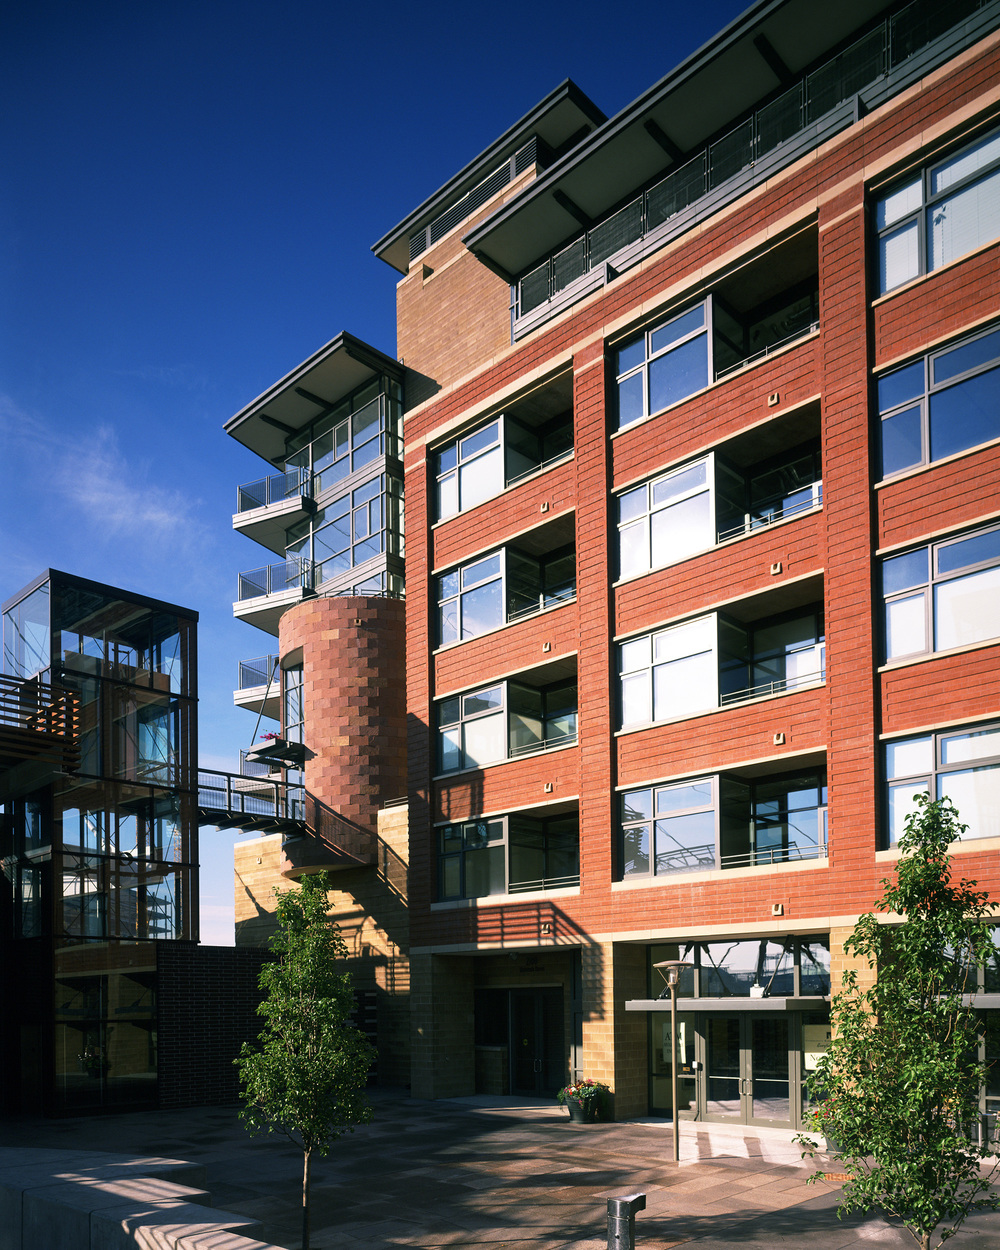 promenade_lofts_denver.jpg